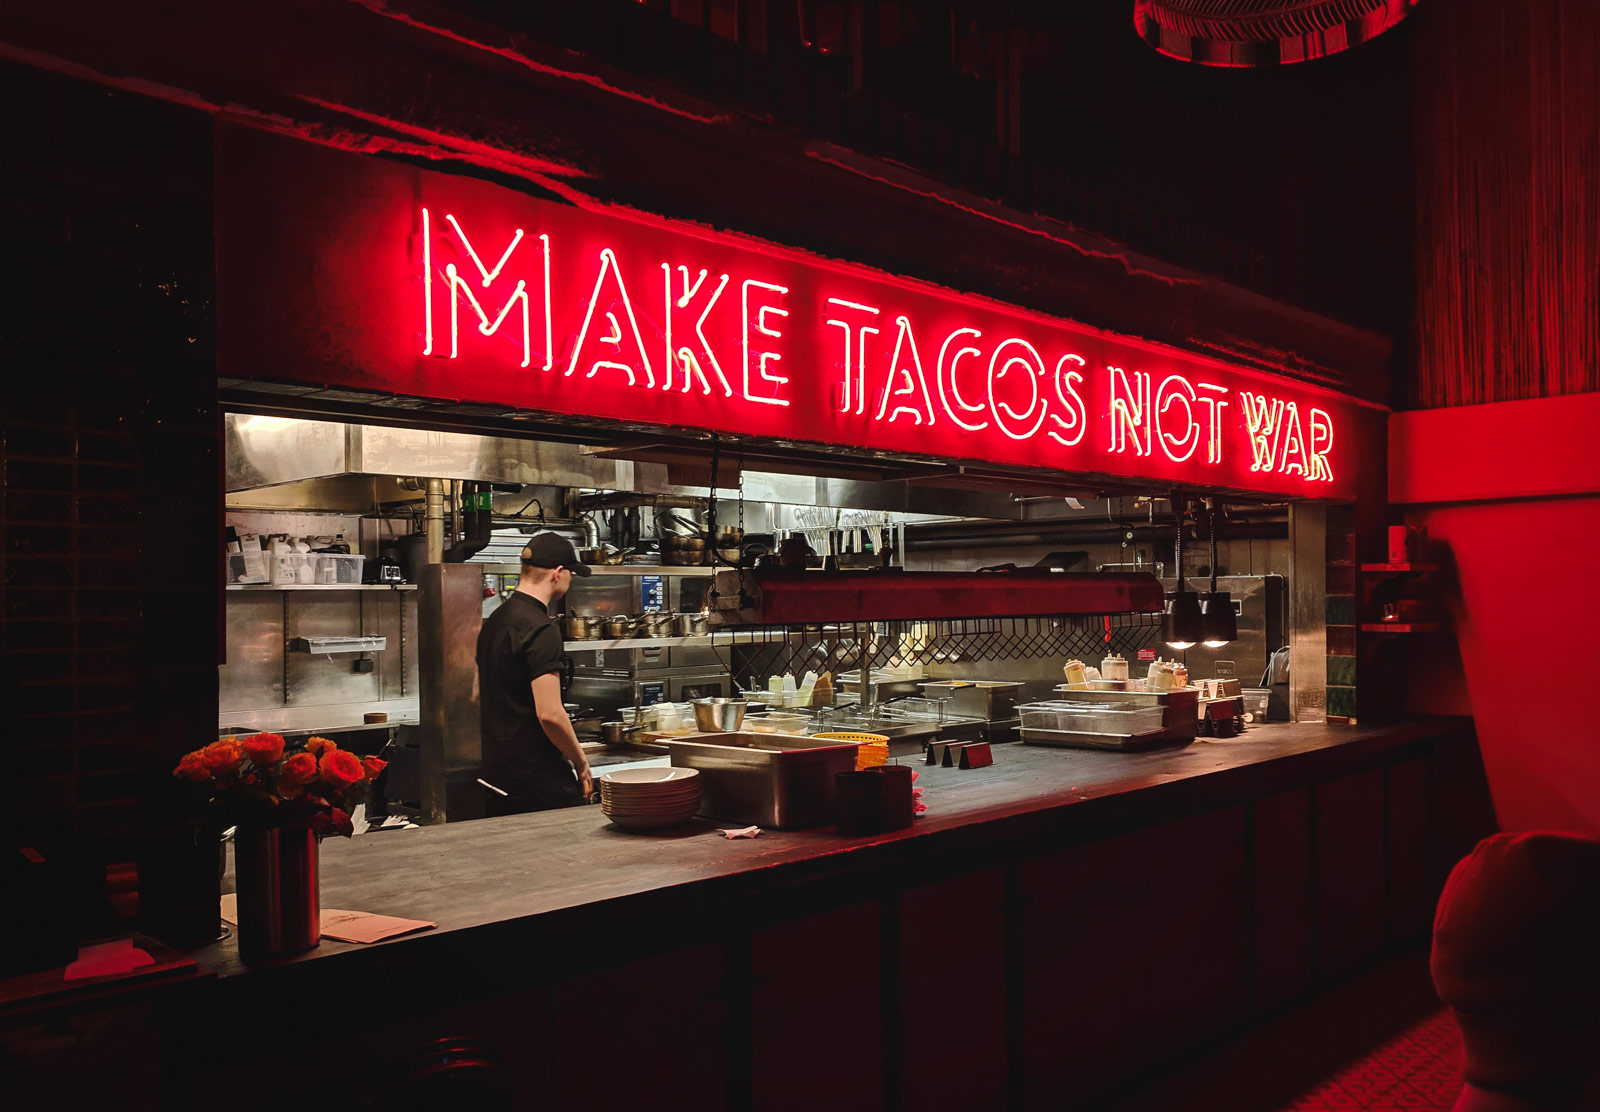 Makes Tacos Not War sign